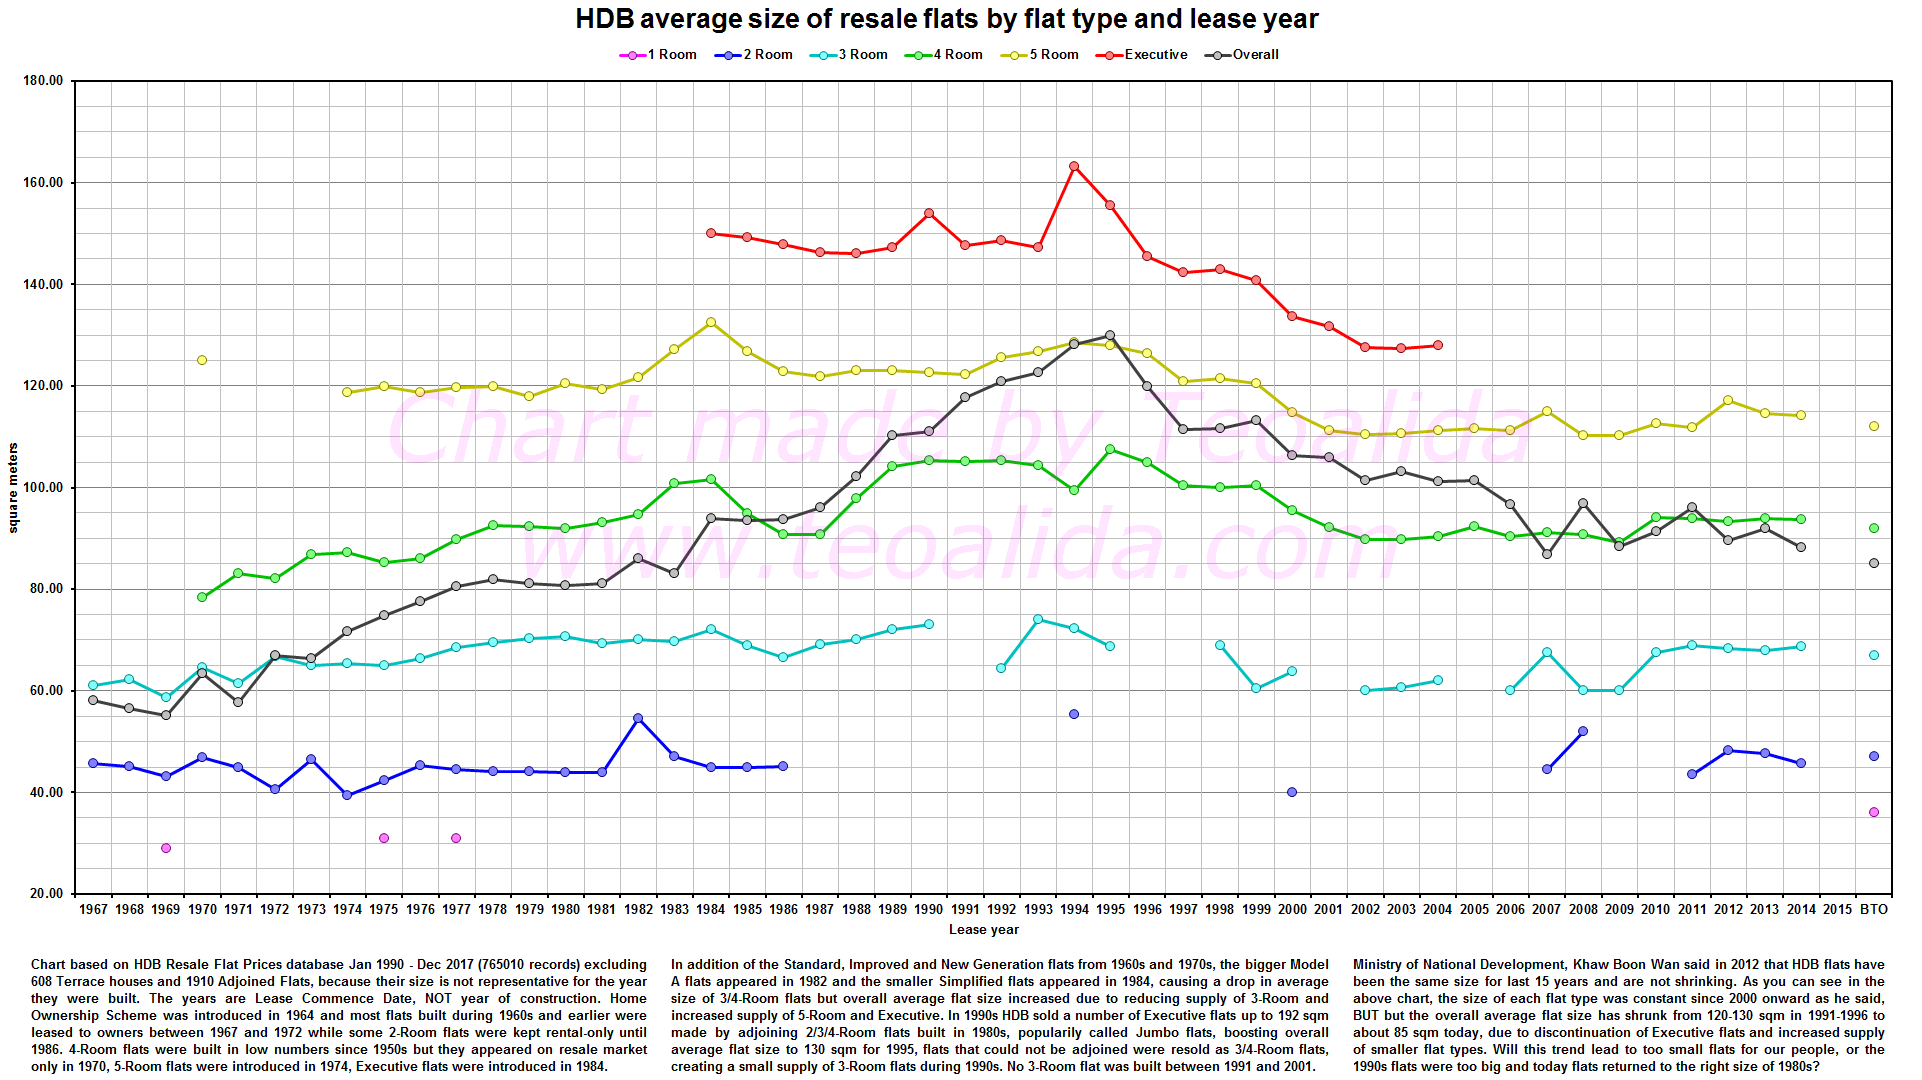 HDB flats size over years